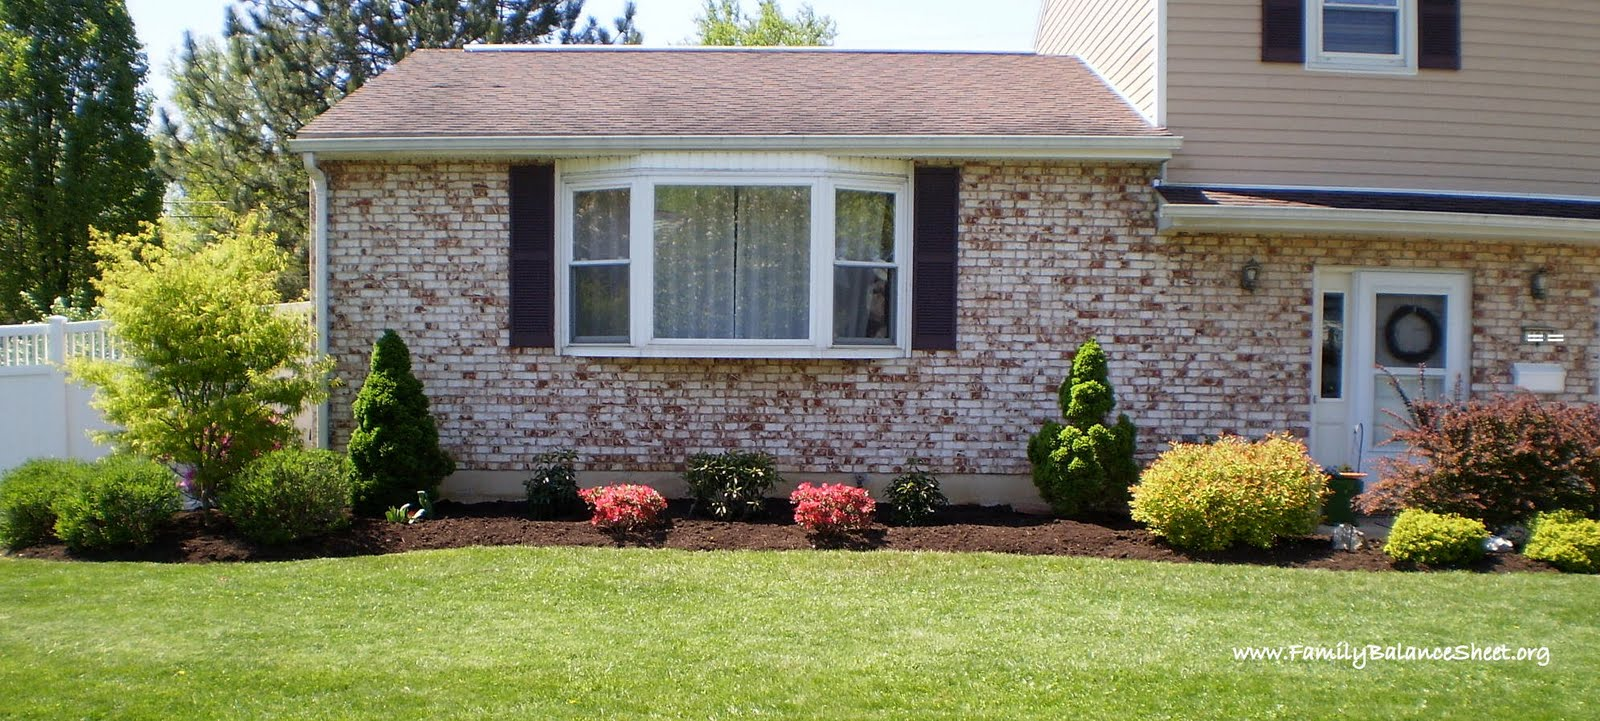 15 tips to help you design your front yard save money too for Simple landscape design for front of house